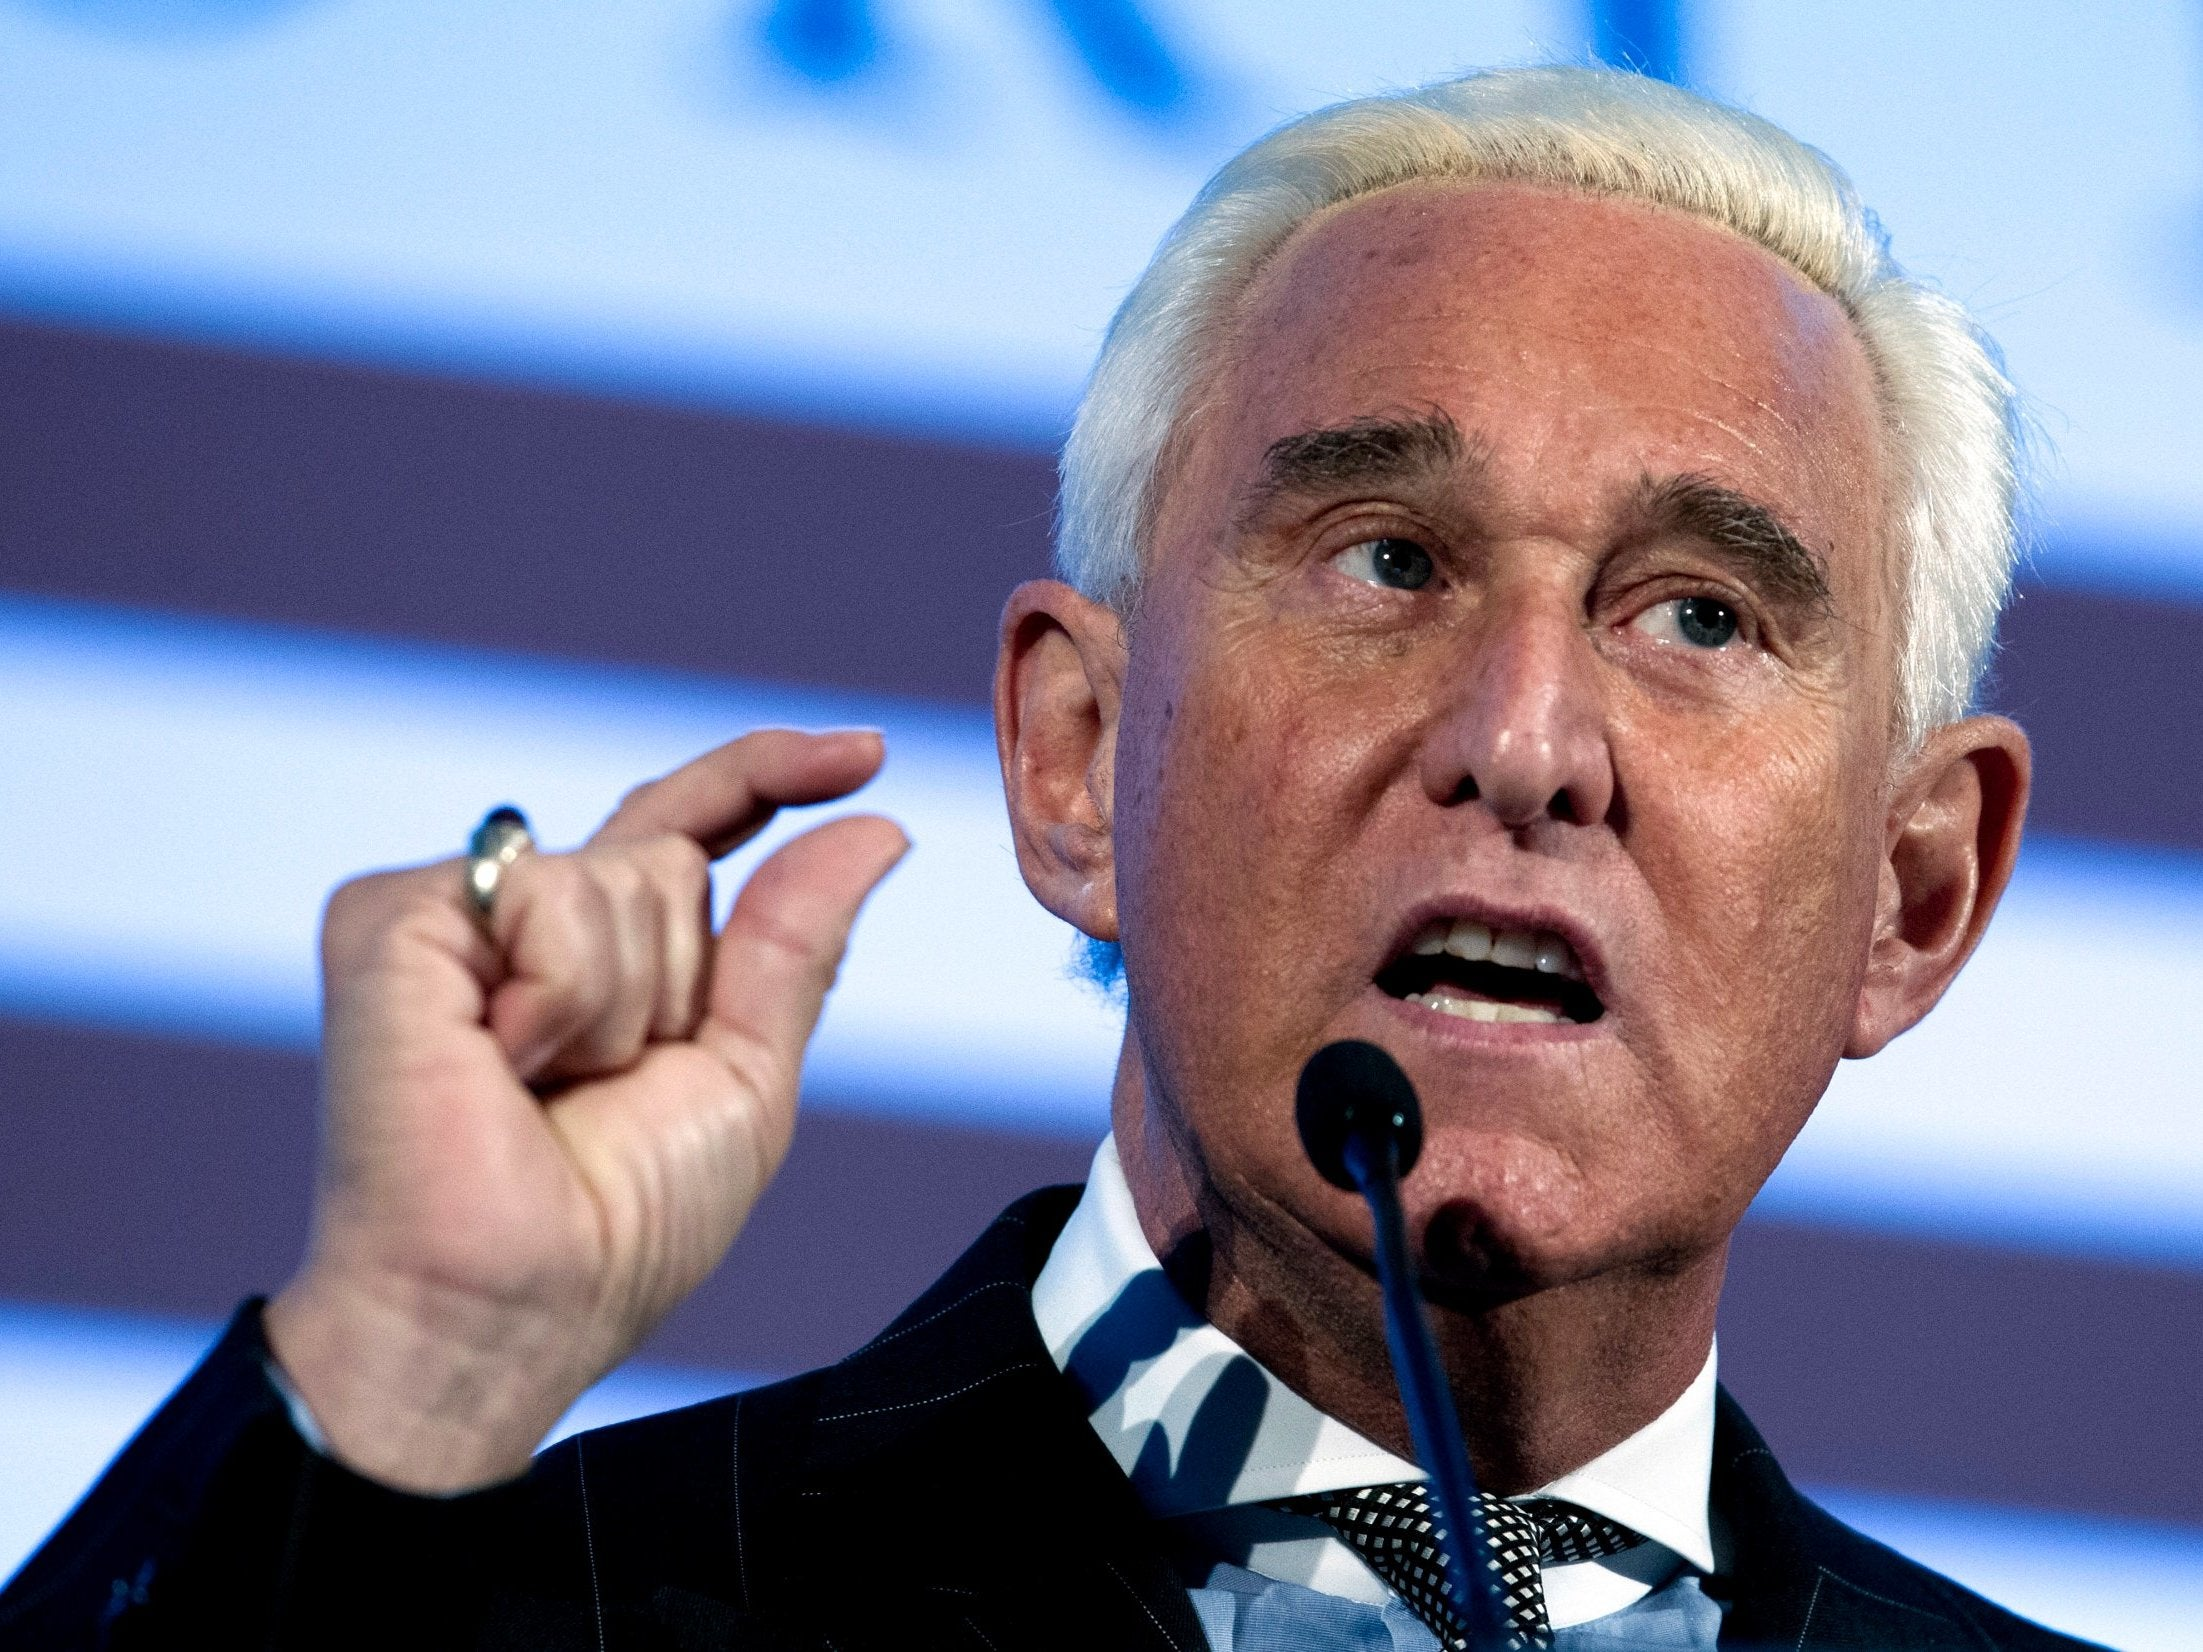 Roger stone fired from bob dole campaign